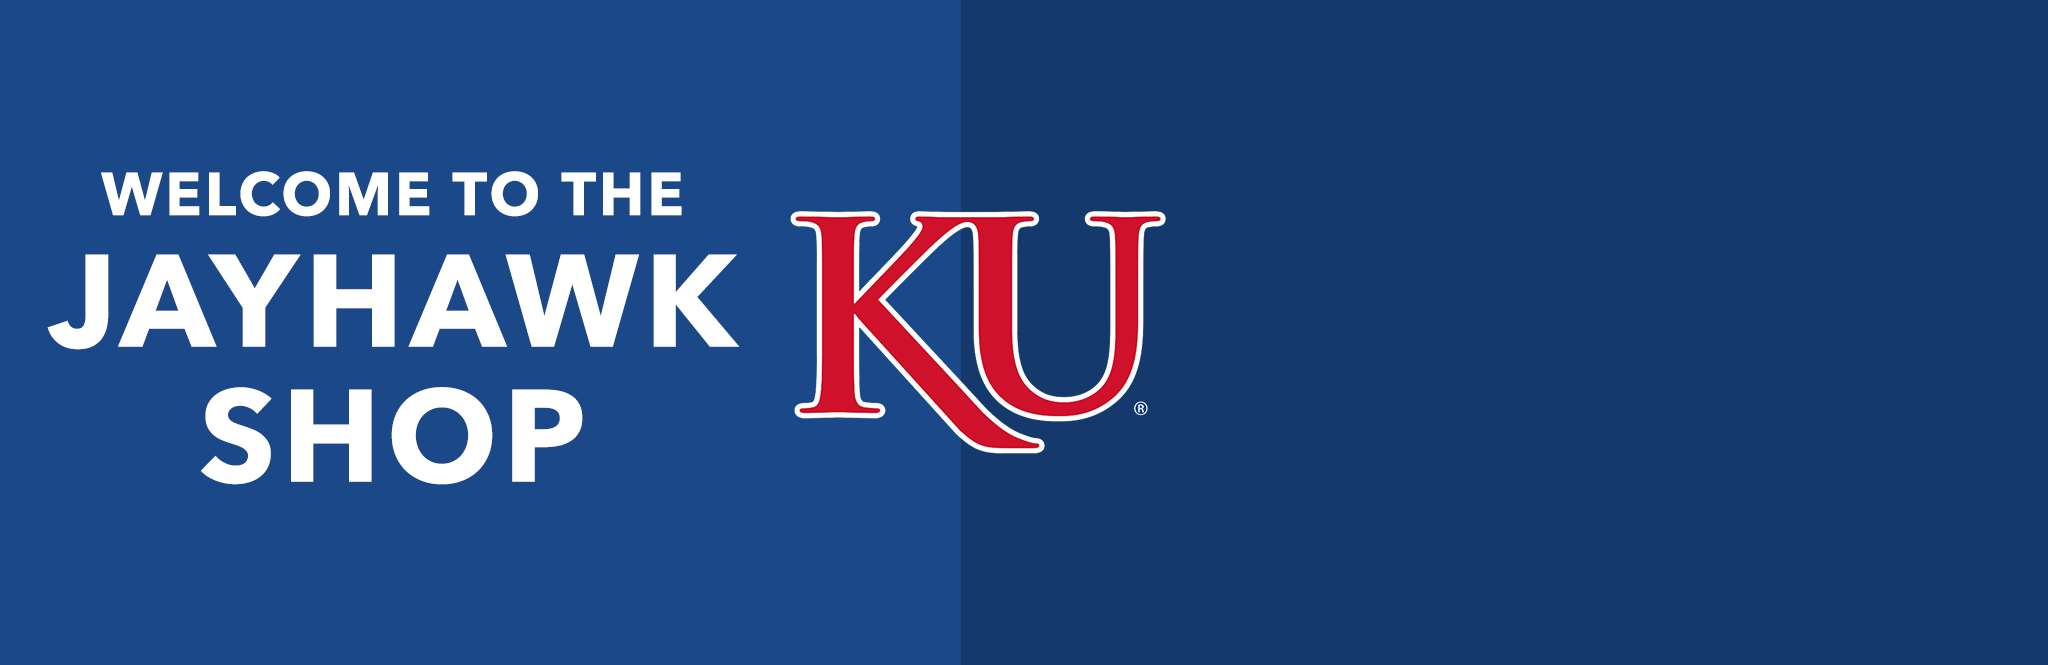 39bfef484d2 Kansas Jayhawks Apparel and Gear | Tailgate Collegiate Clothing ...